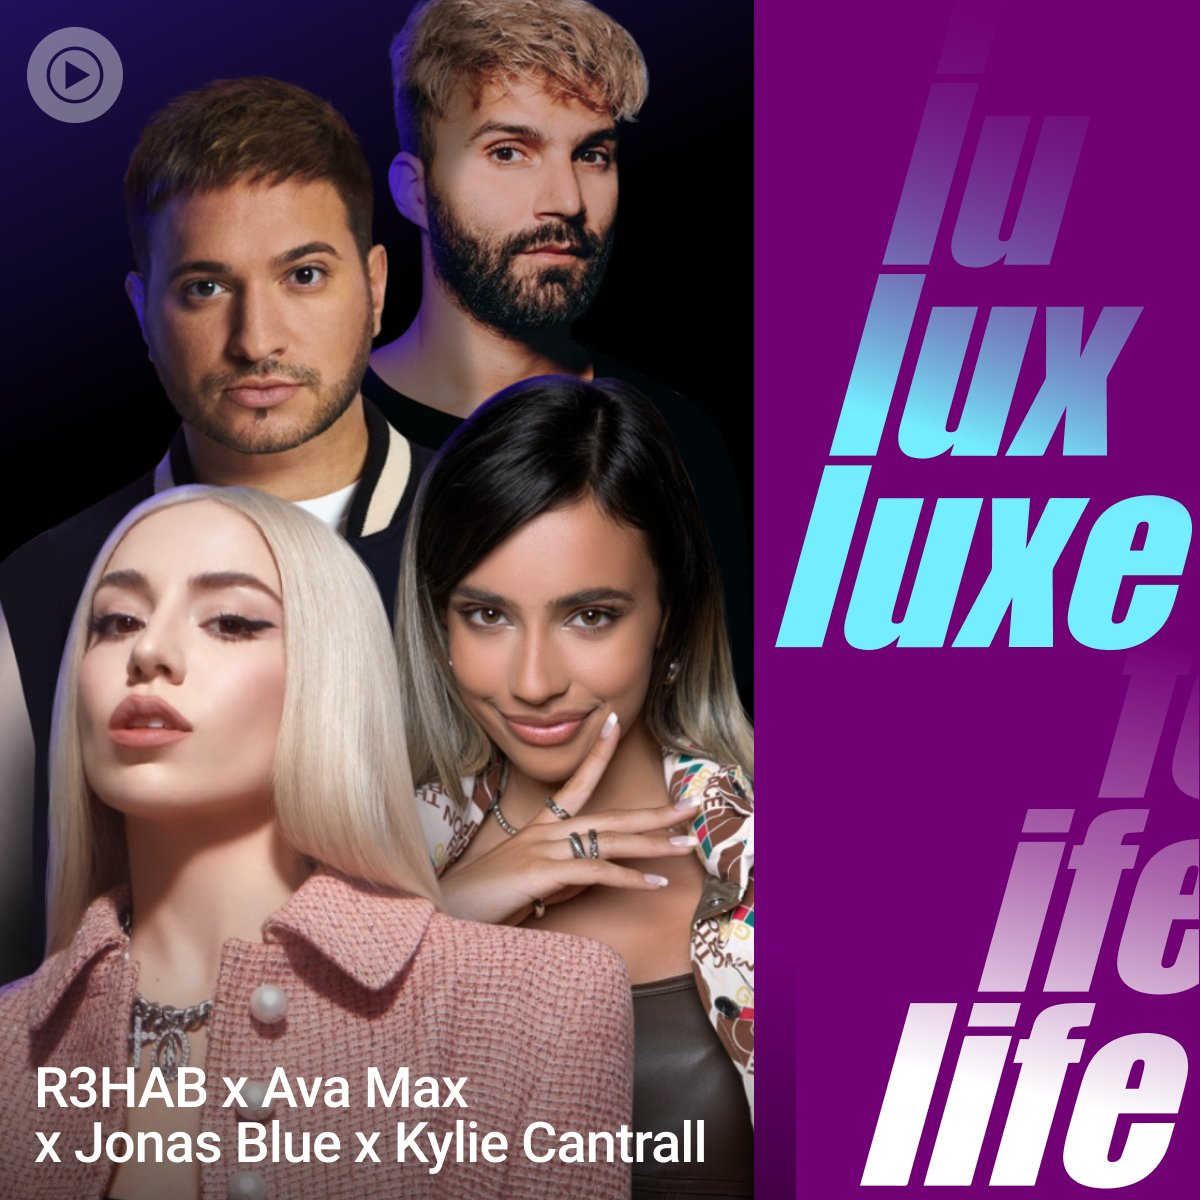 Thank you @YoutubeMusic #LuxeLife💙@AvaMax @R3HAB #KylieCantrall